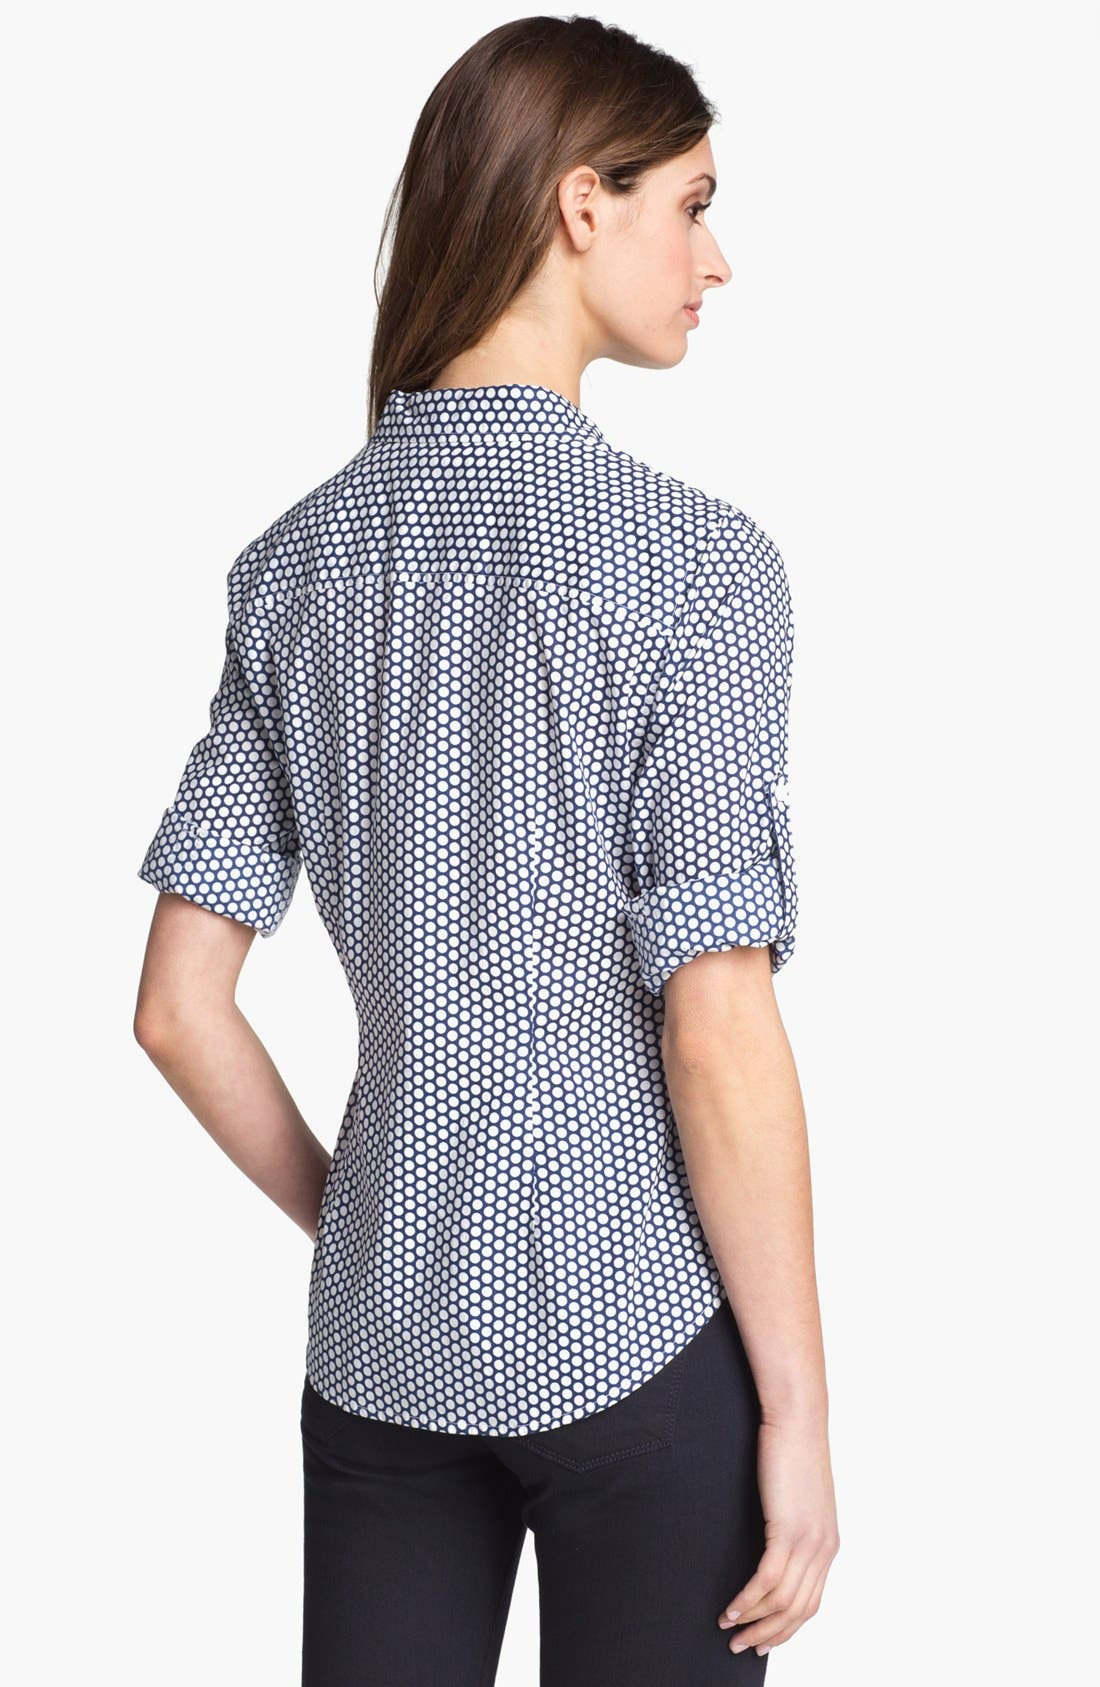 Alternate Image 2  - Sandra Ingrish Roll Sleeve Polka Dot Shirt (Petite)